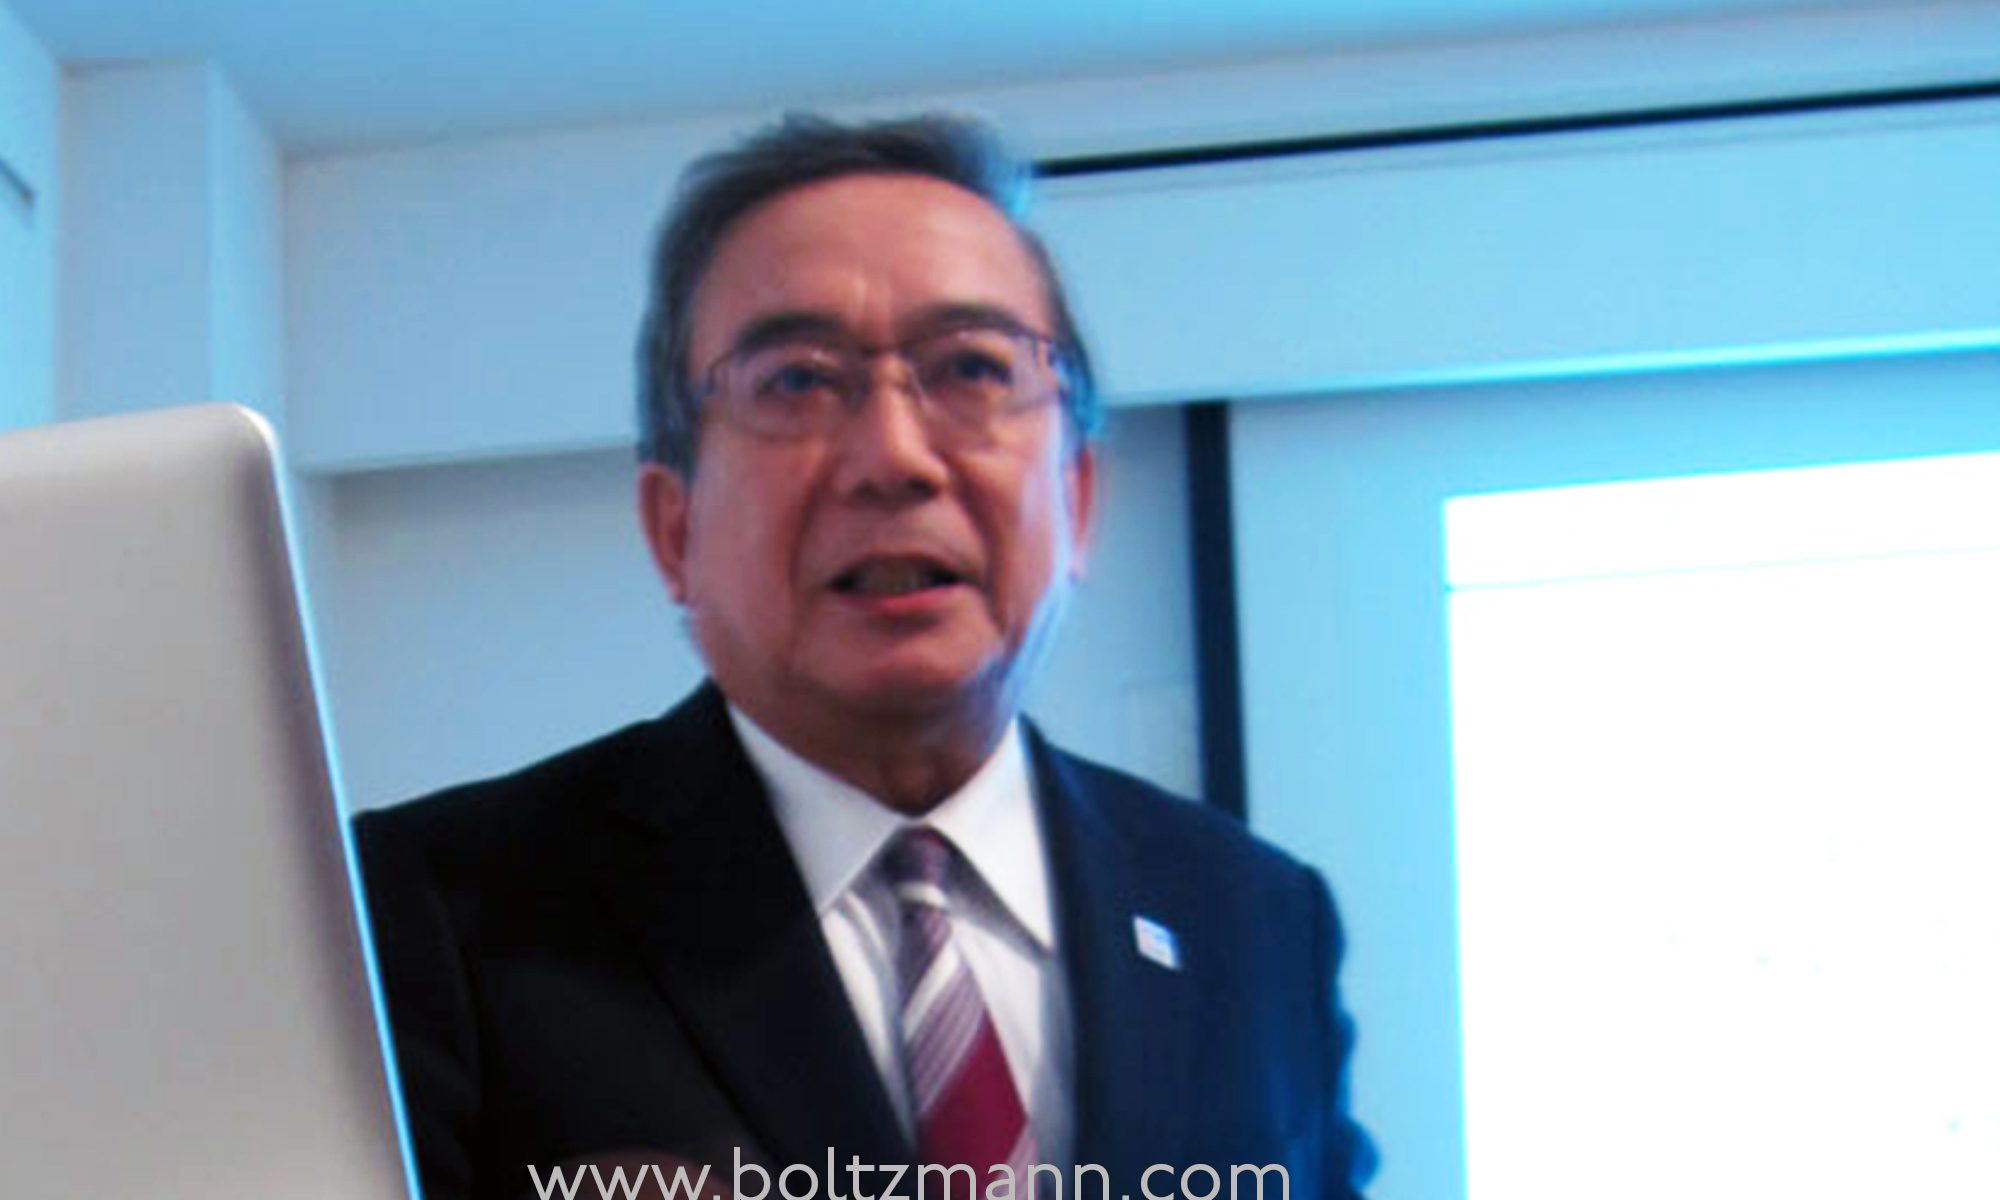 Tokyo Institute of Technology President Yoshinao Mishima: Educational reforms at Tokyo Institute of Technology